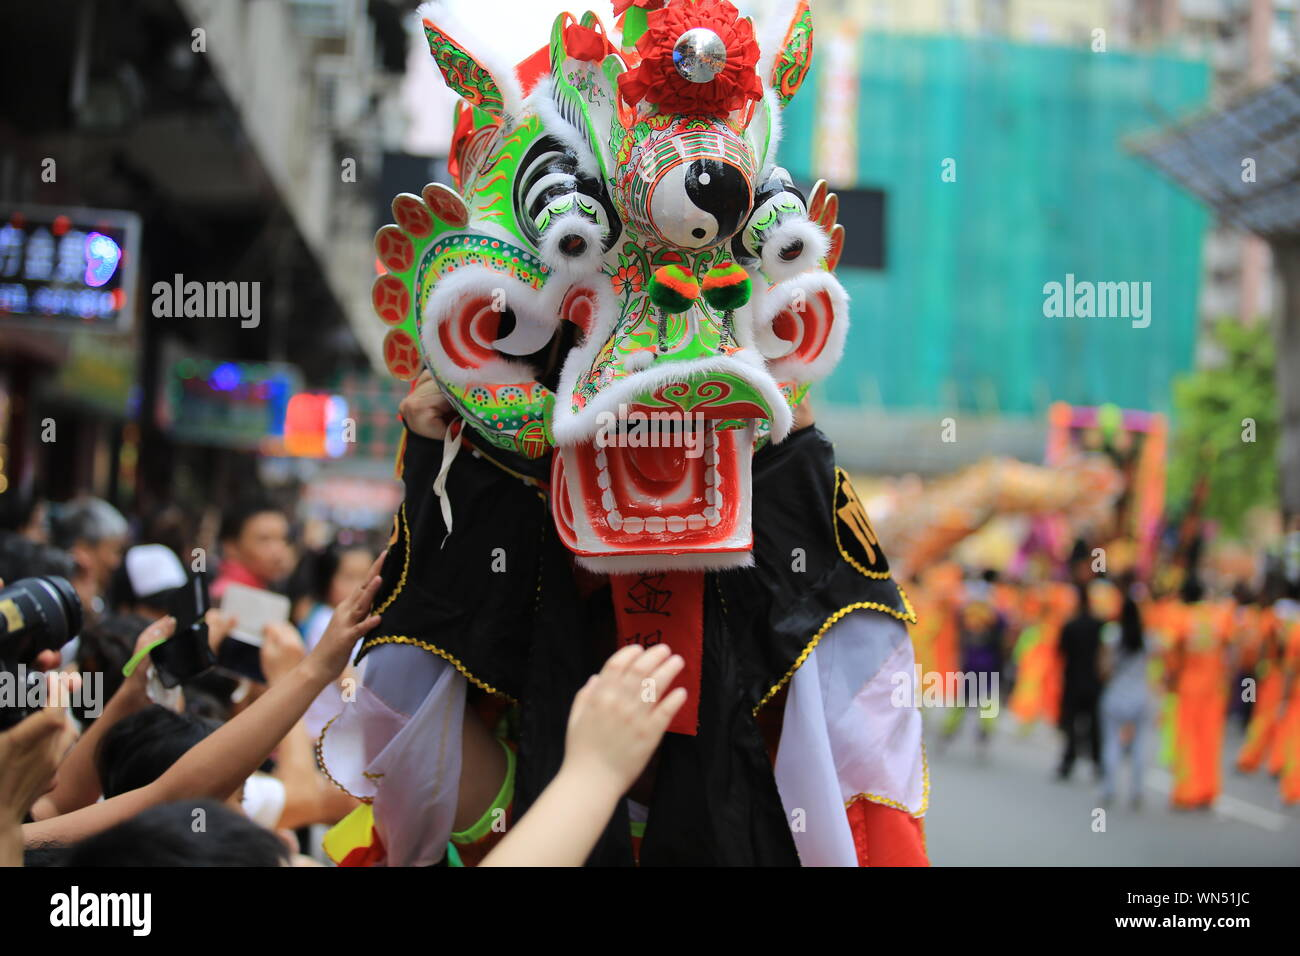 Close-up Of Person Wearing Costume In City During Event Stock Photo